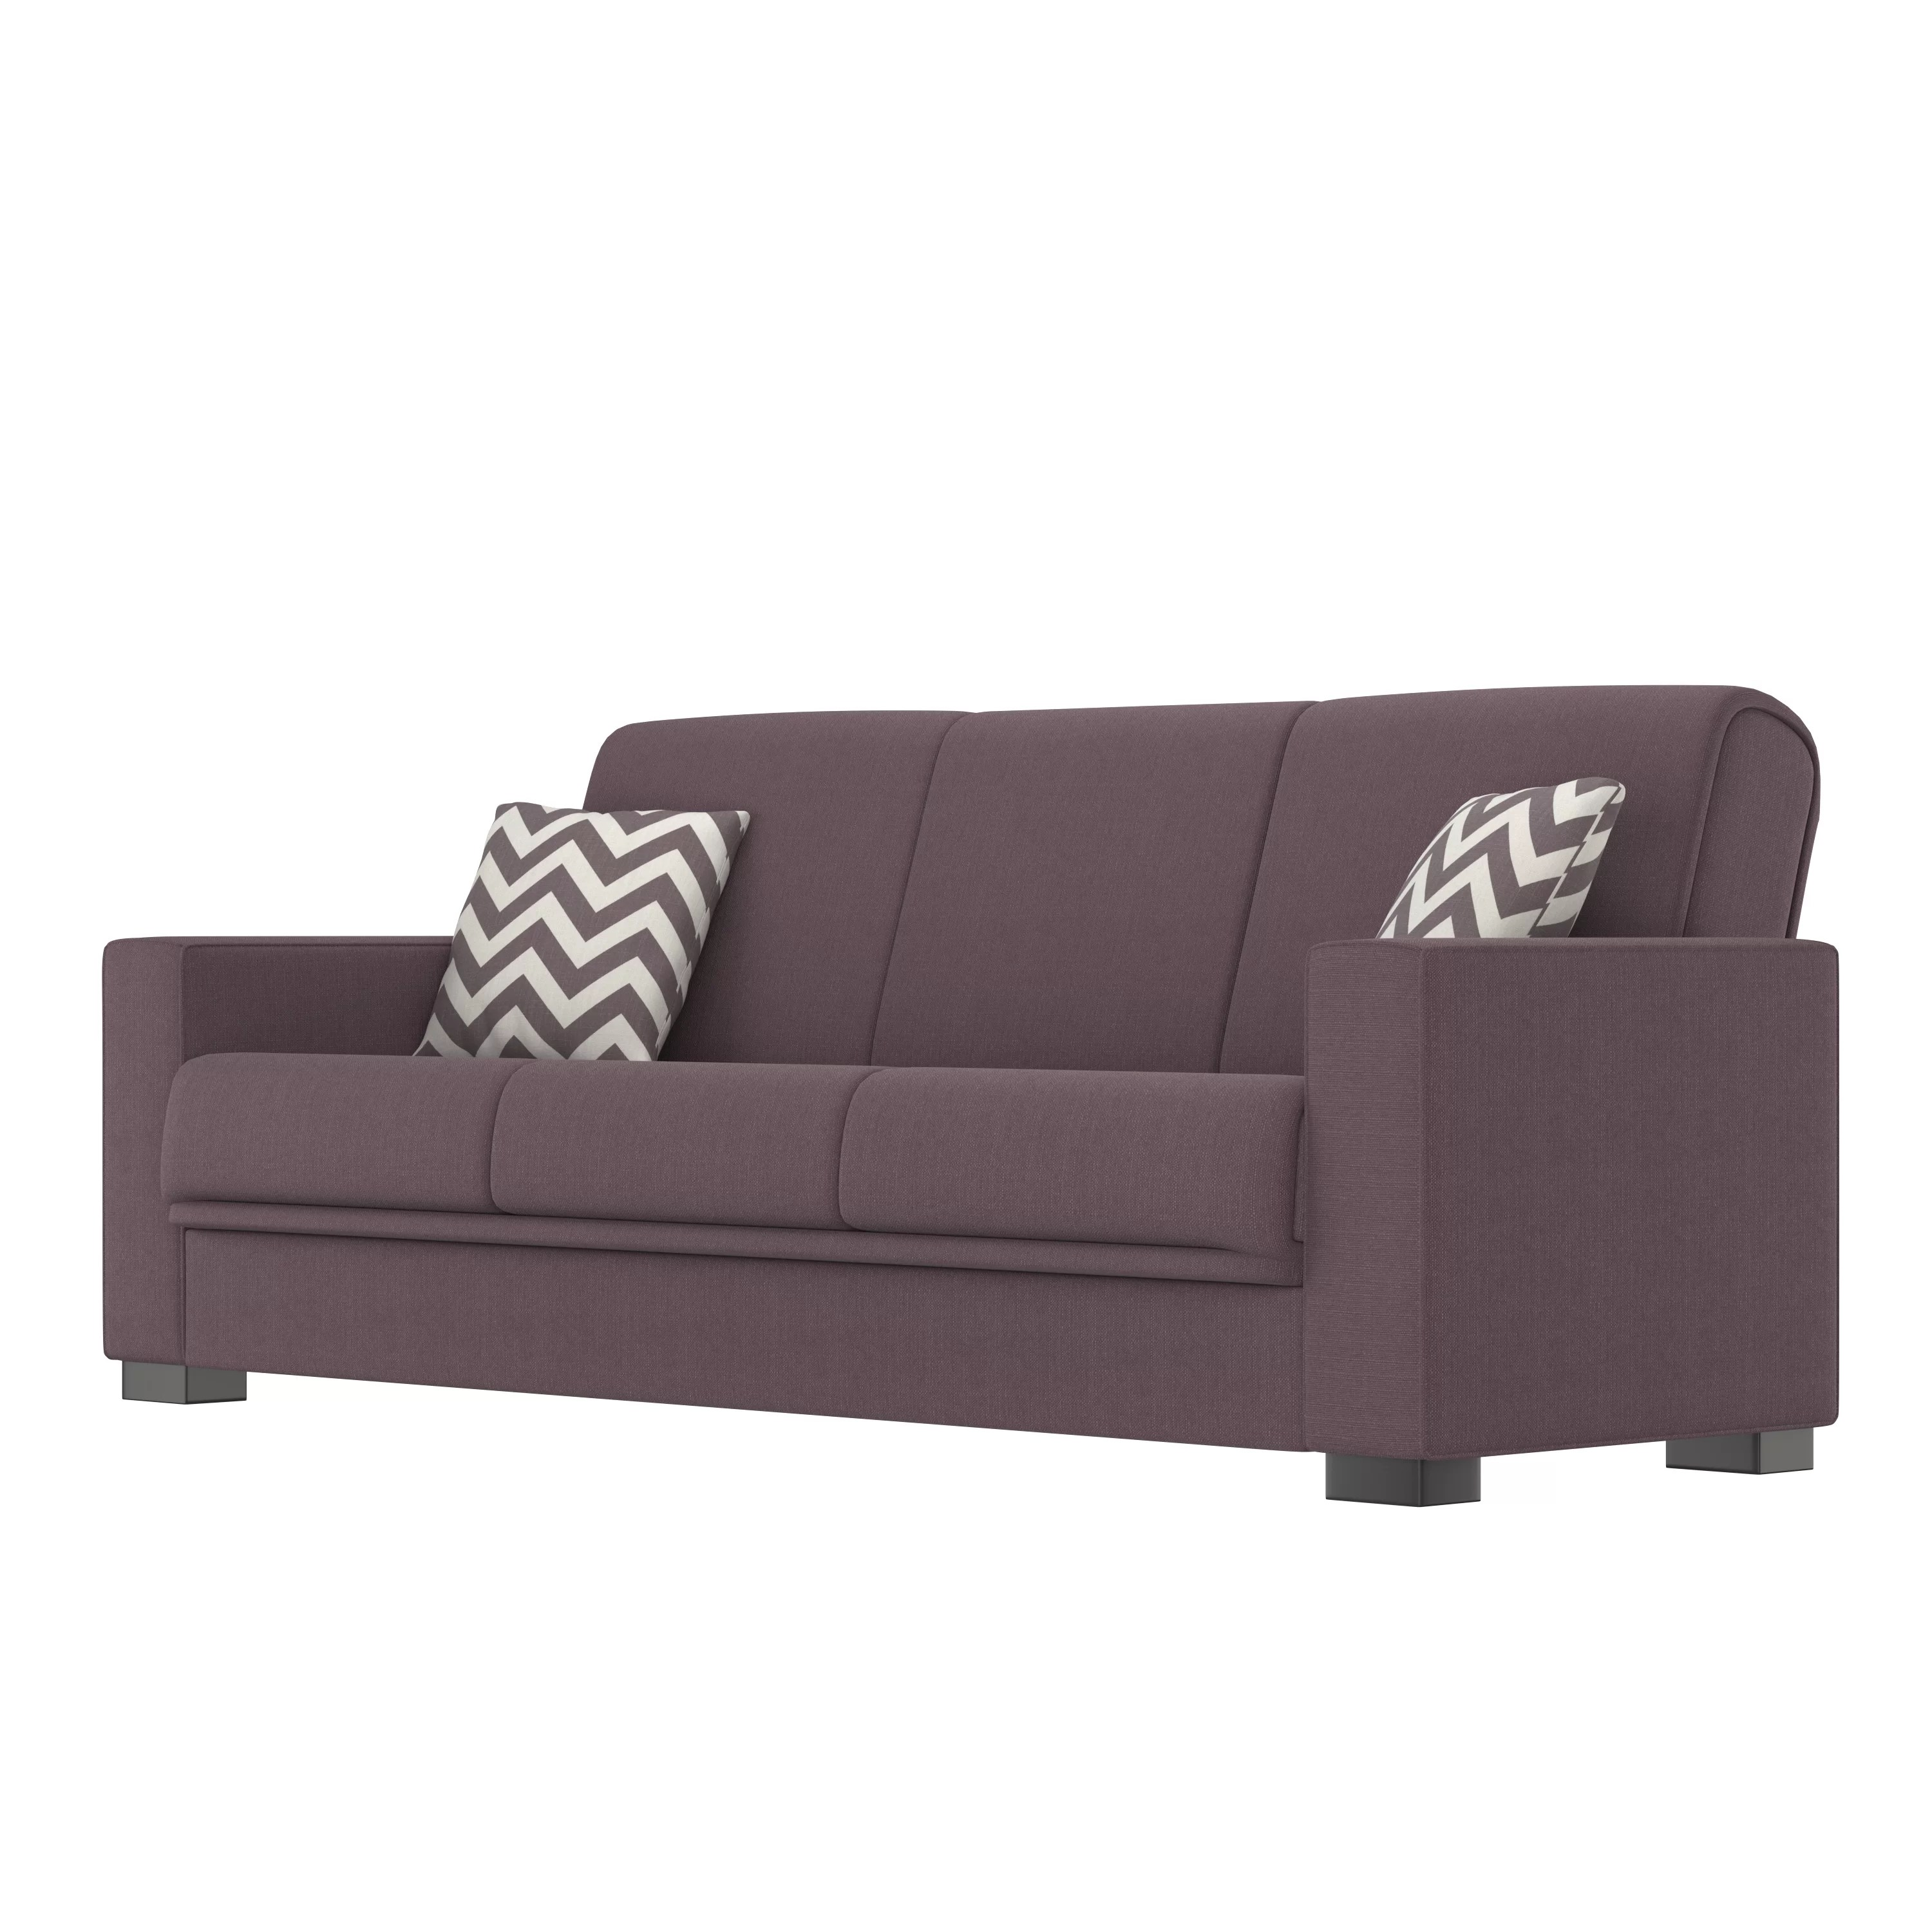 Sofas And Stuff Reviews Swiger Sleeper